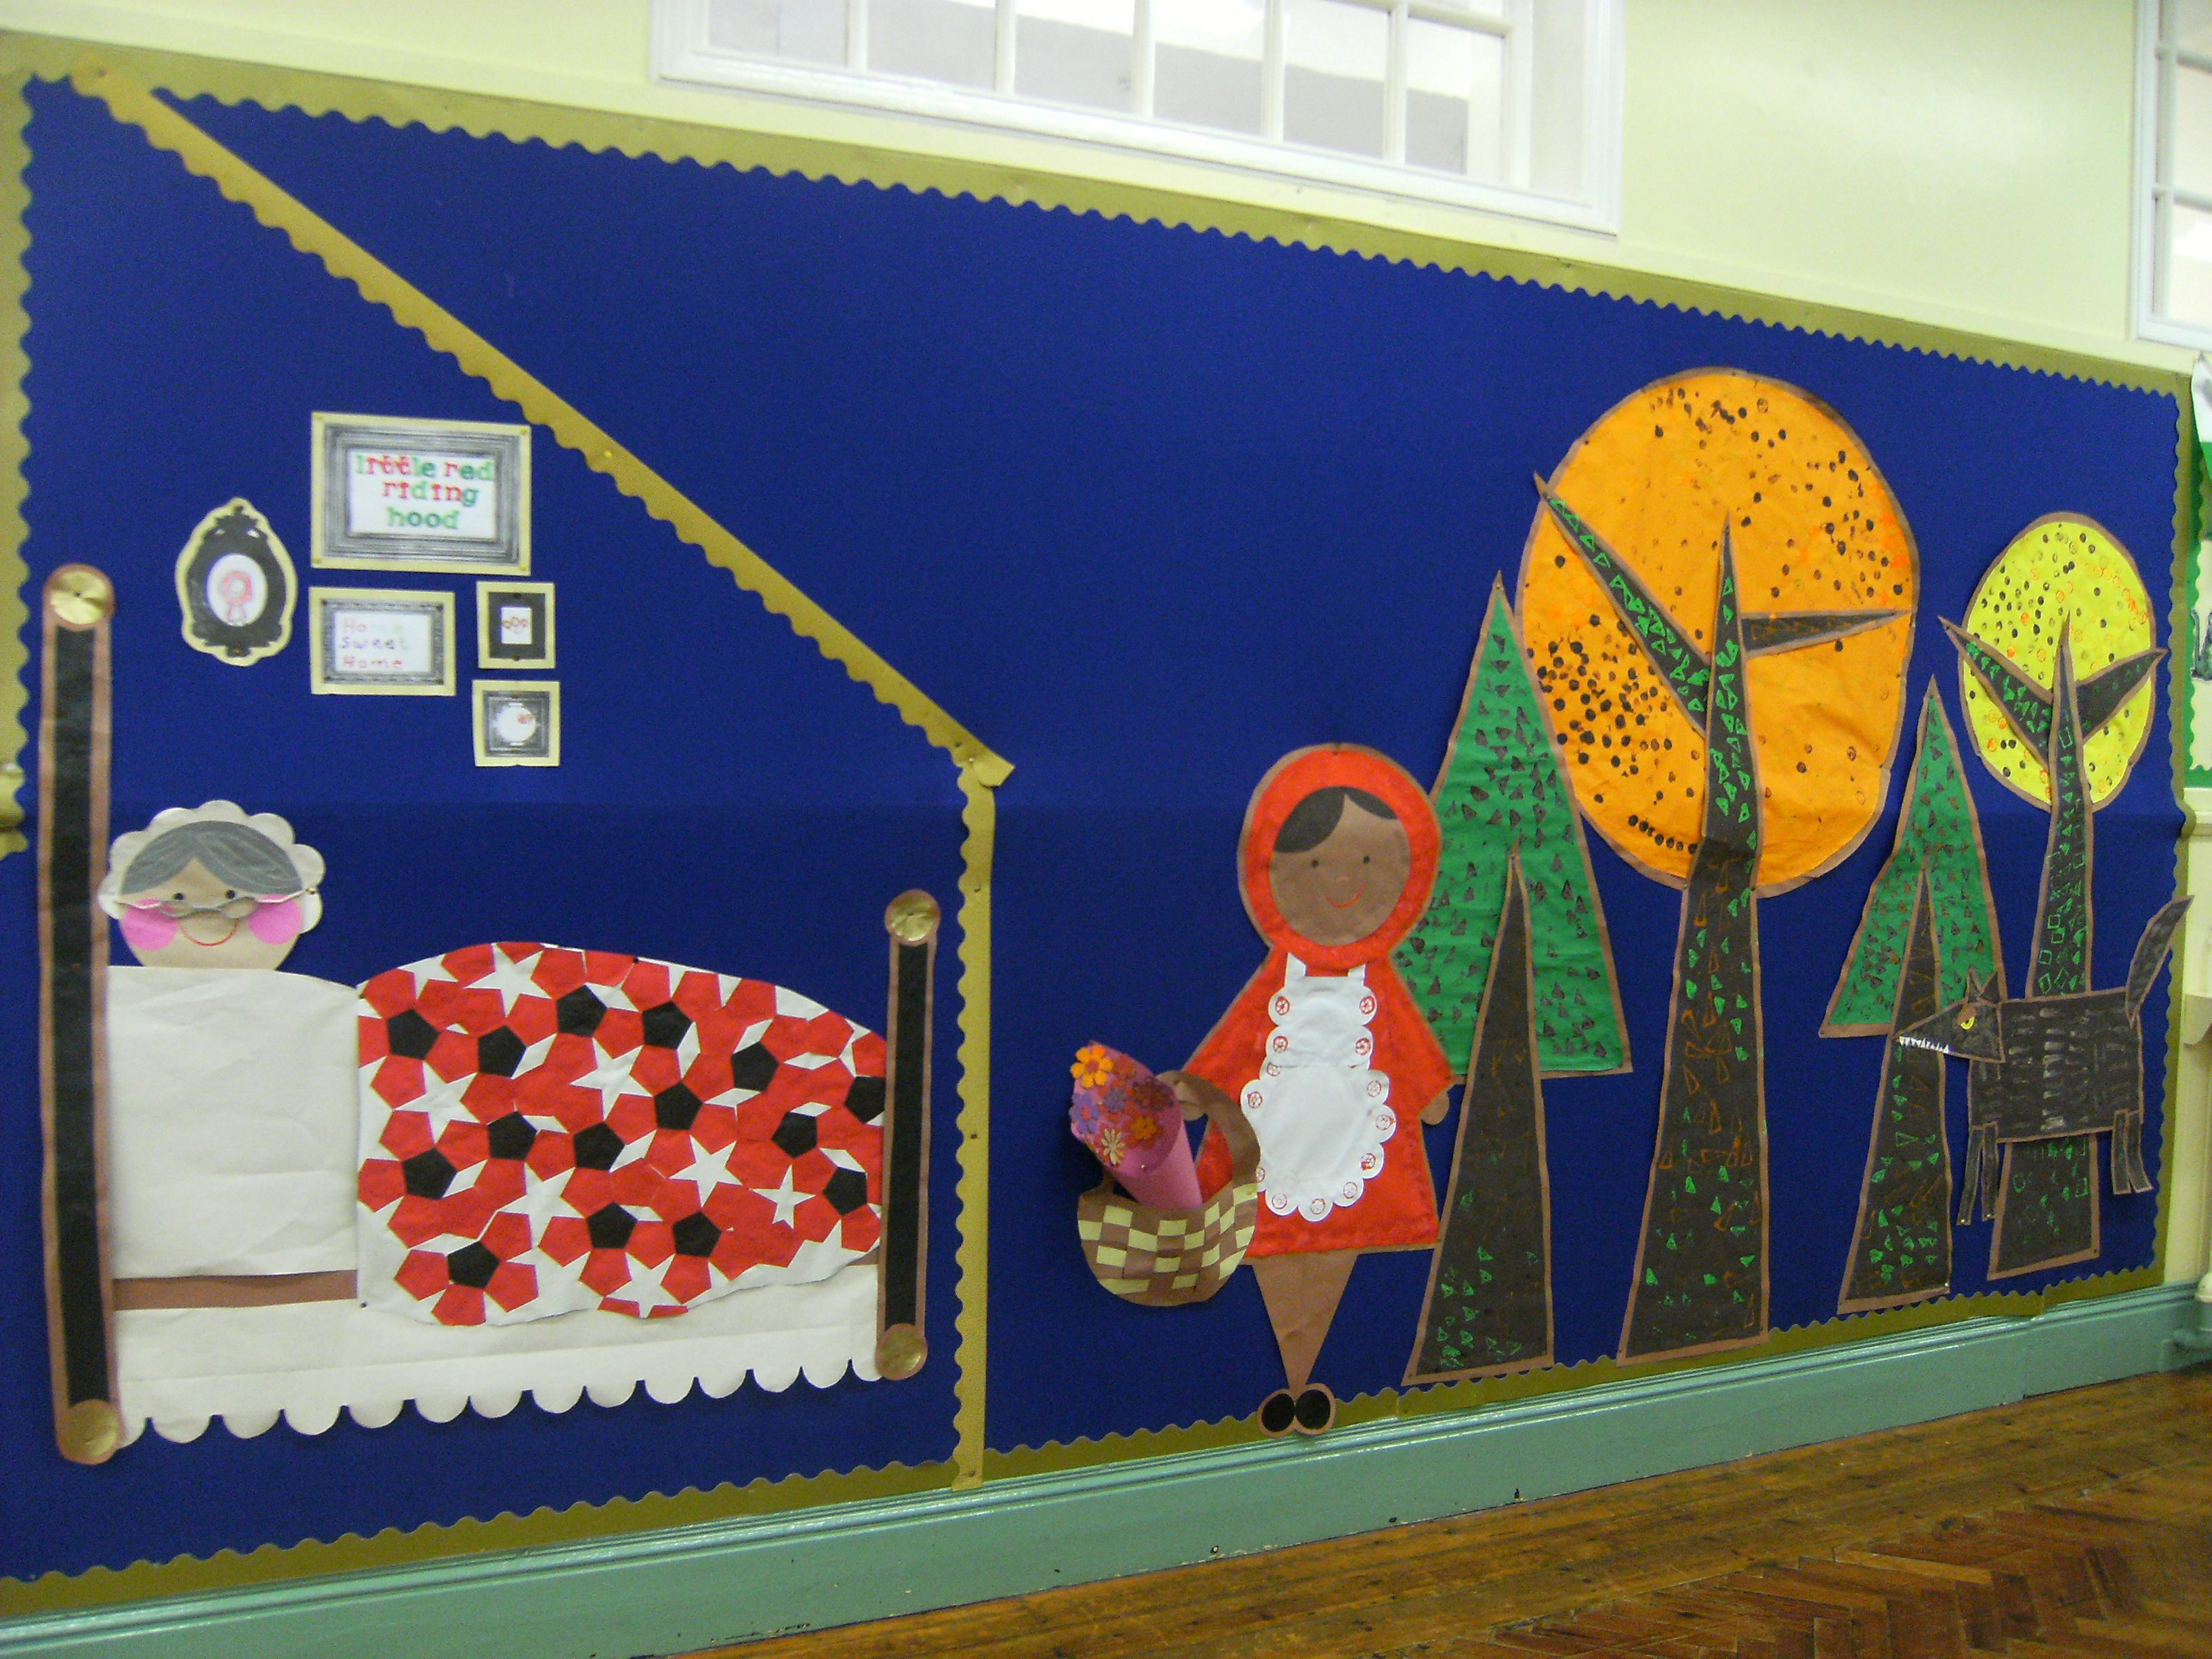 red riding hood display using shapes foundation phase made red riding hood display using shapes foundation phase made the children grandma